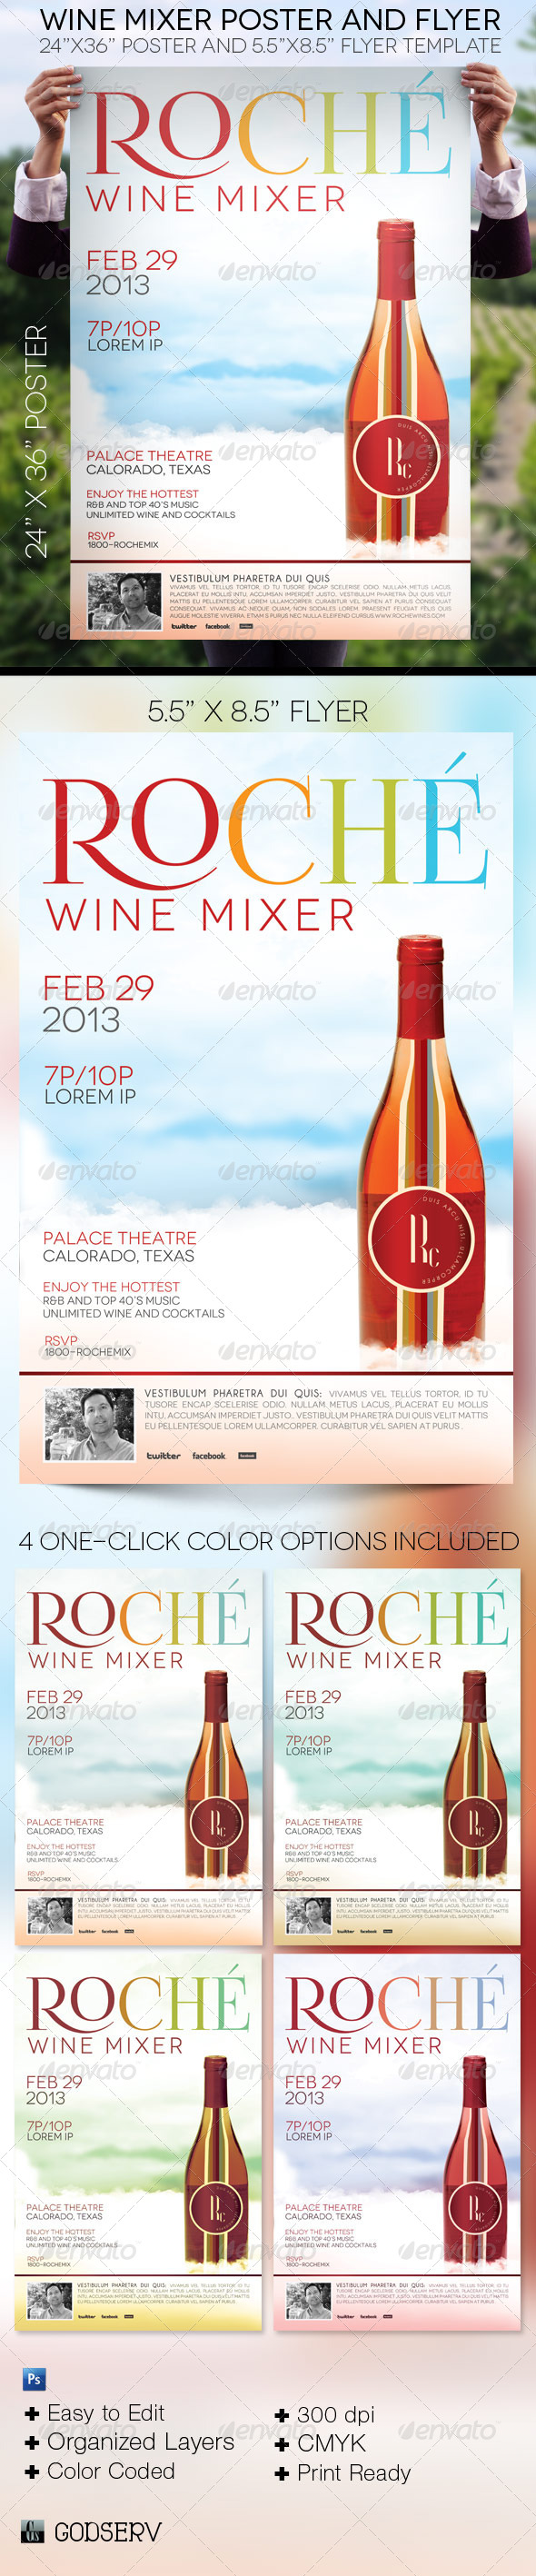 GraphicRiver Wine Mixer Poster and Flyer Template 4312842